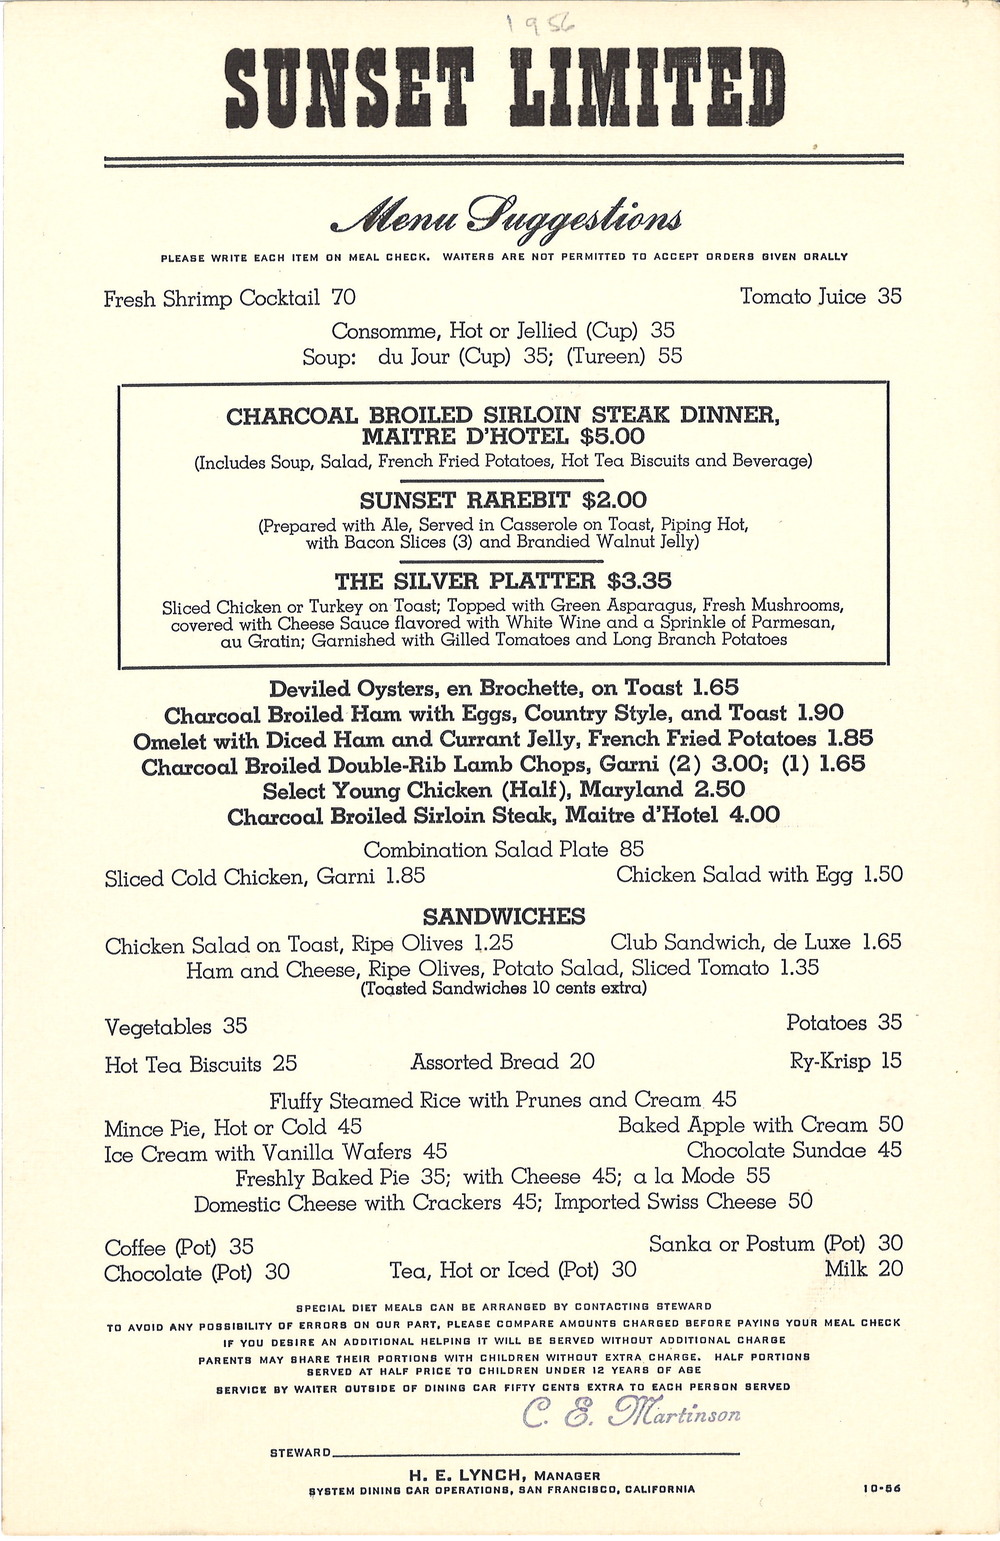 SP Sunset Limited Menu 10-56.jpg